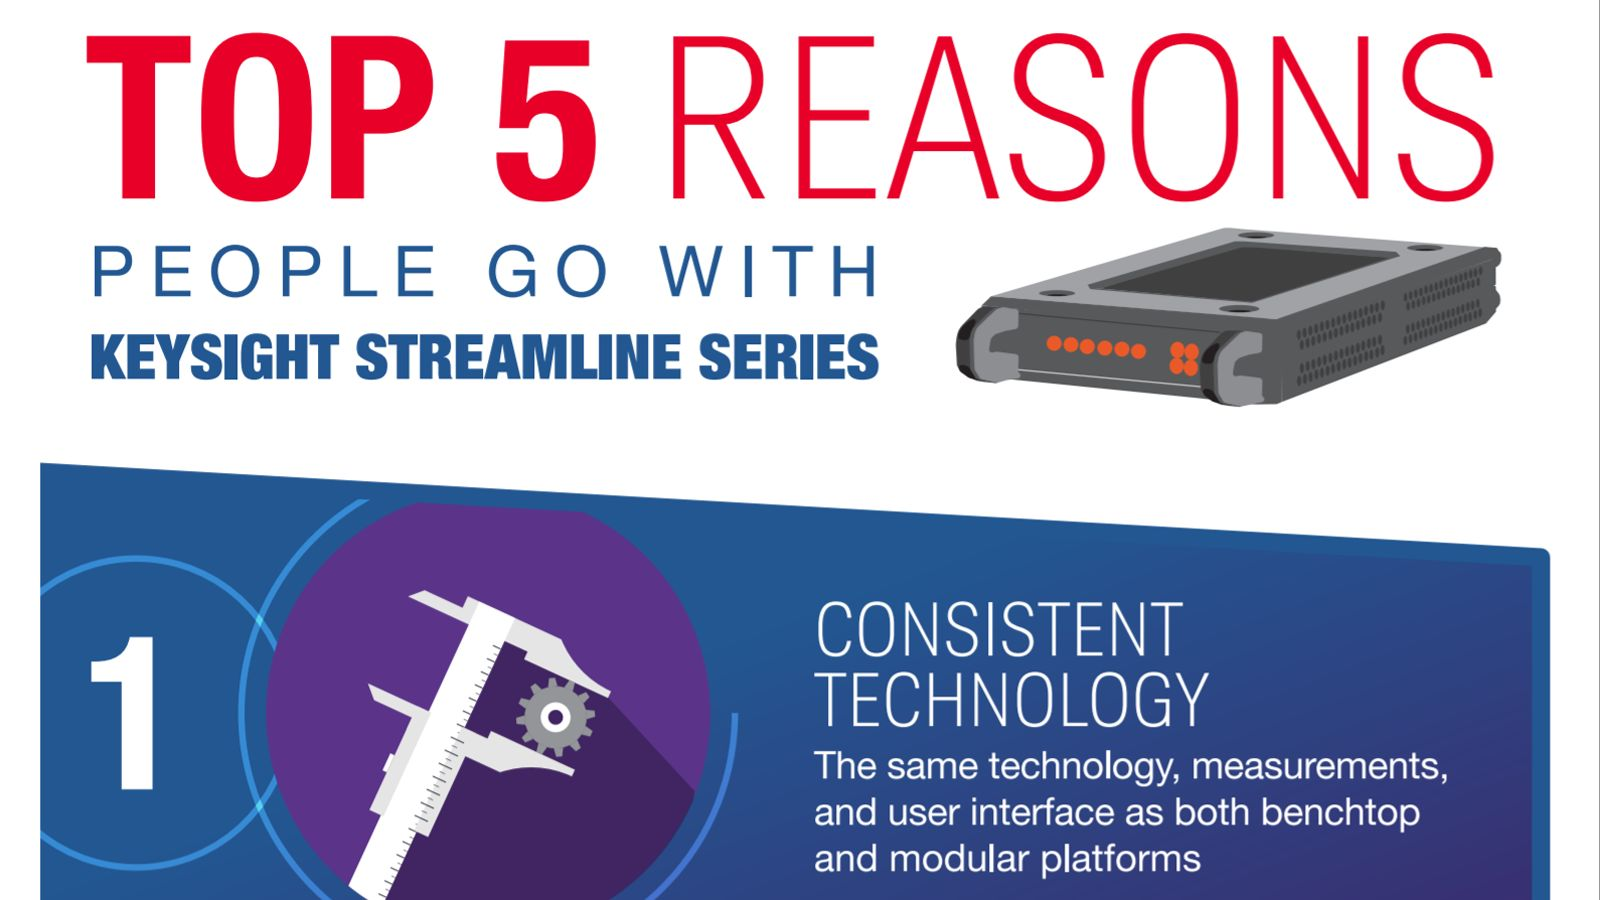 Top 5 Reasons People Go With Keysight Streamline Series